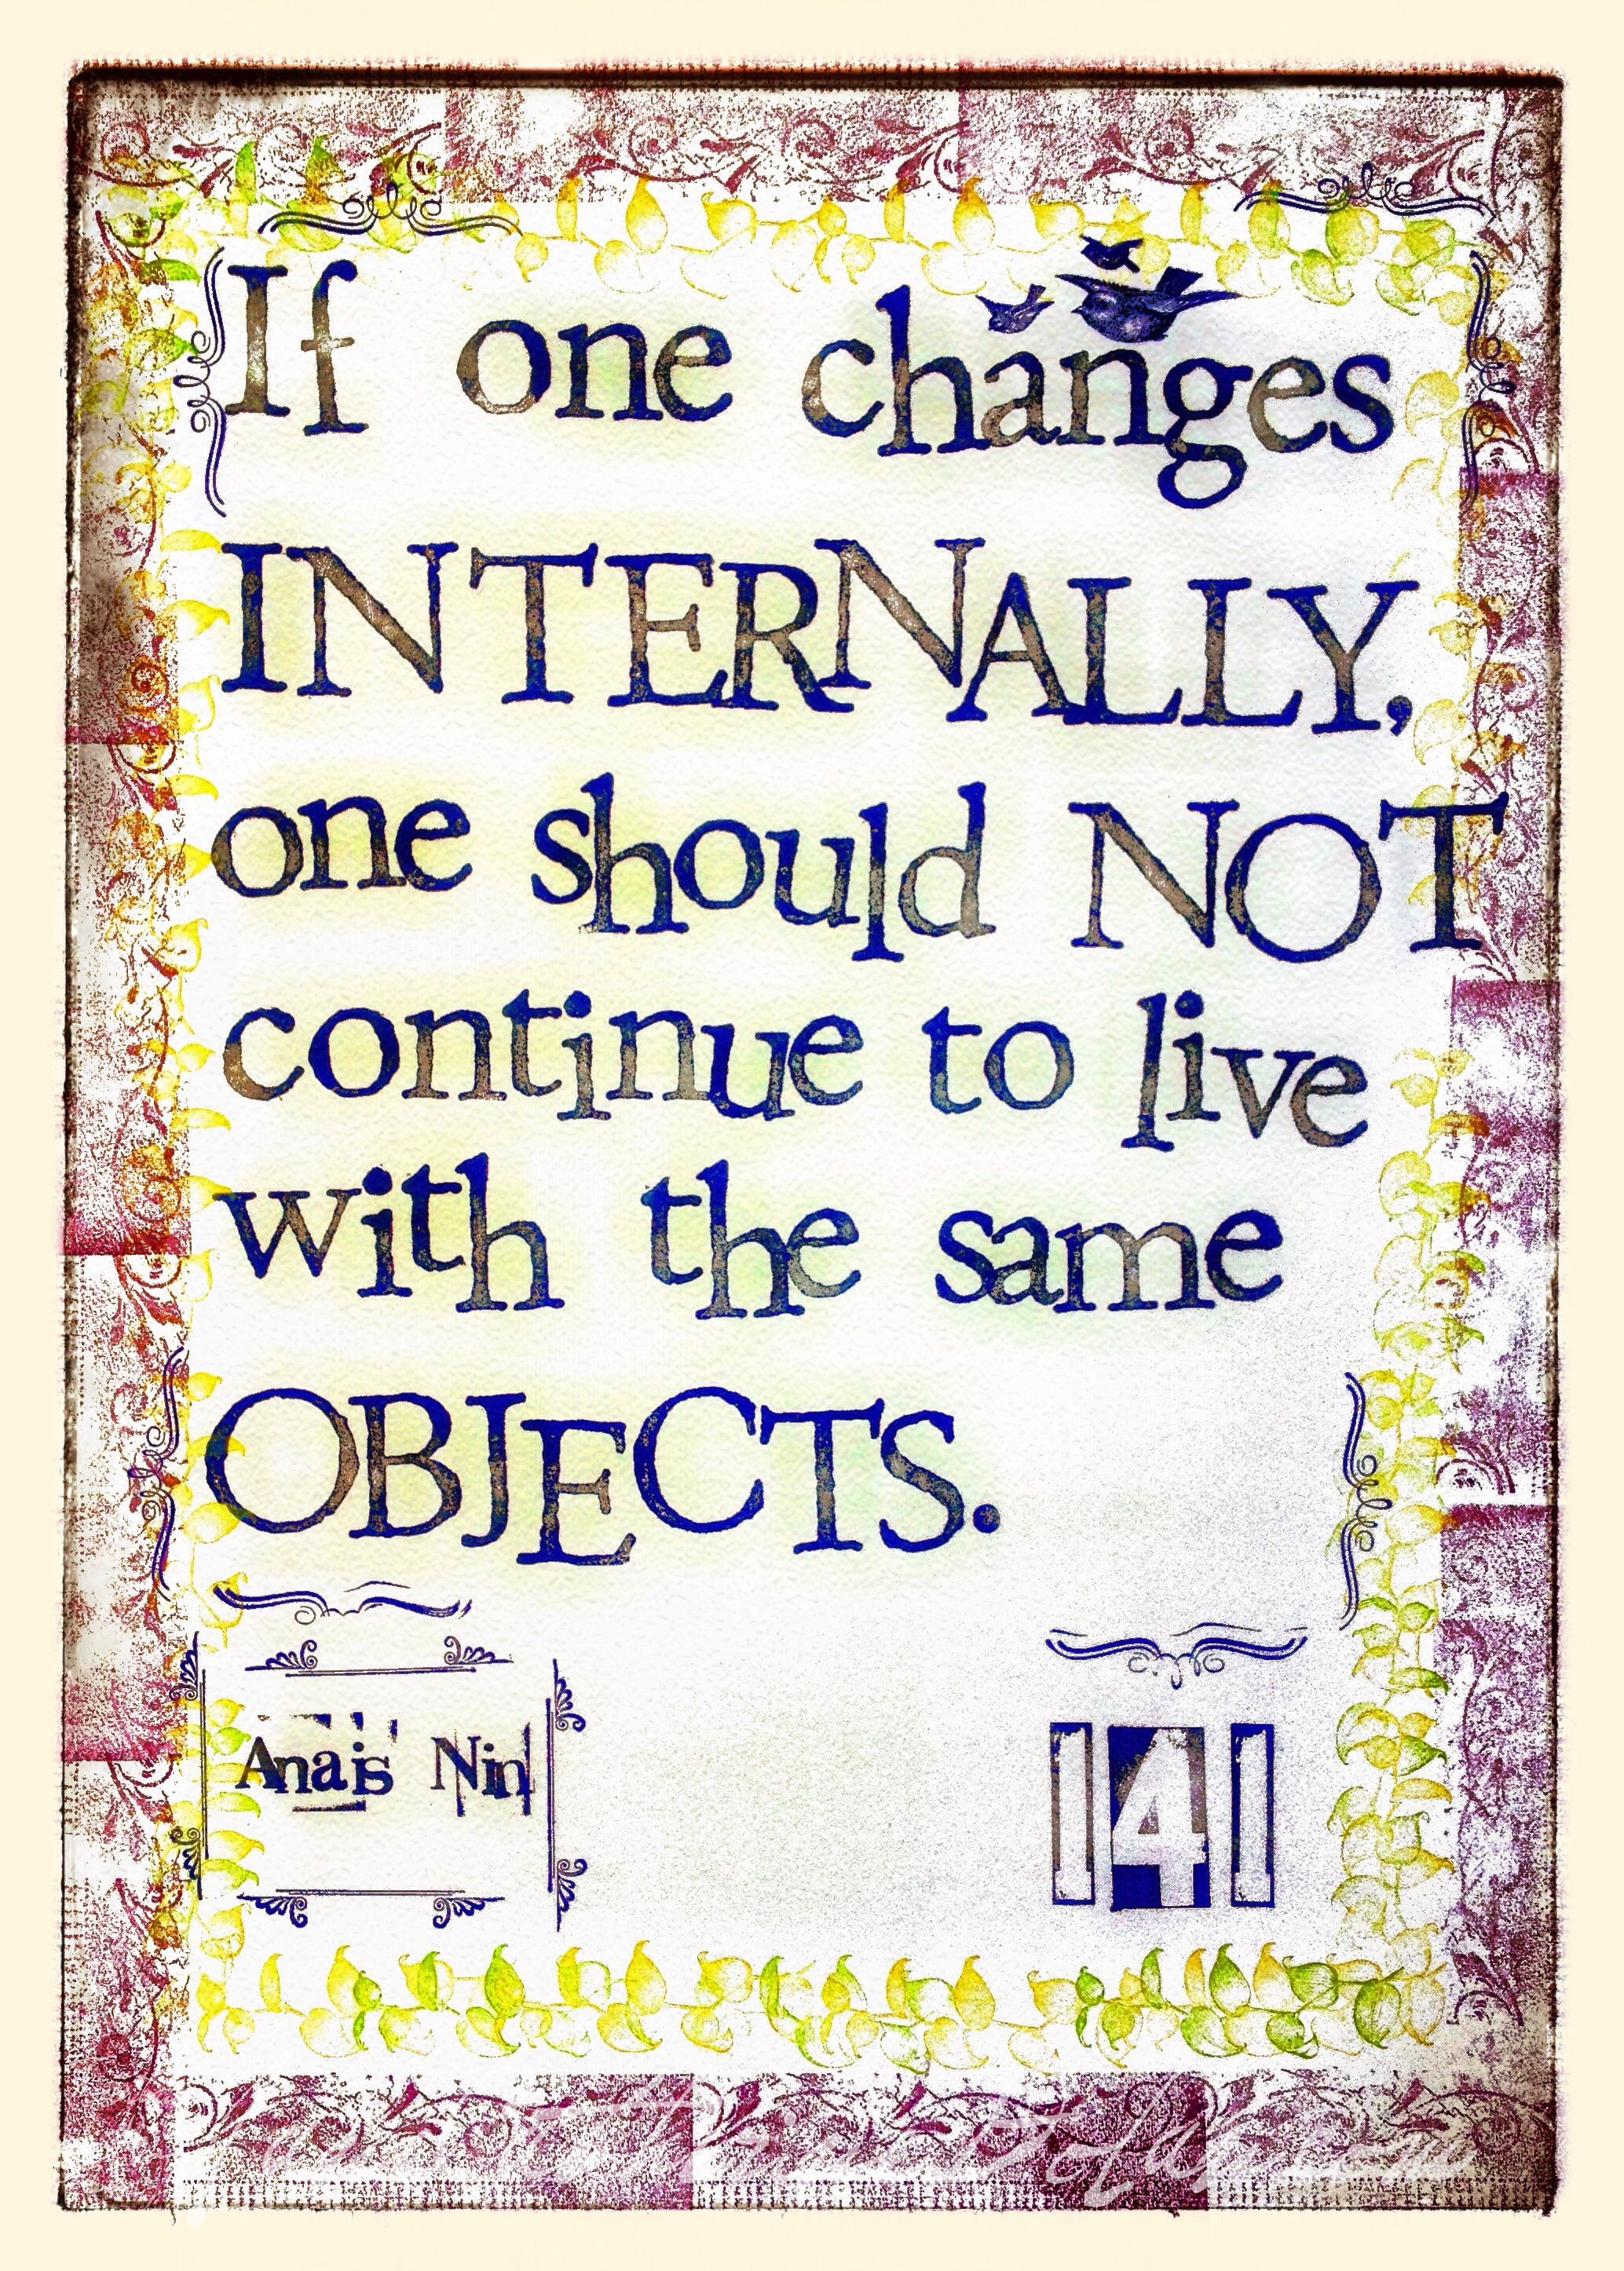 ❝ If one changes internally, one should not continue to live with the same objects. ✶Anais Nin ❧Hand-stamped by Jane Catherine Dolan❧ ✹Quote 141 *via Brain Pickings, most likely